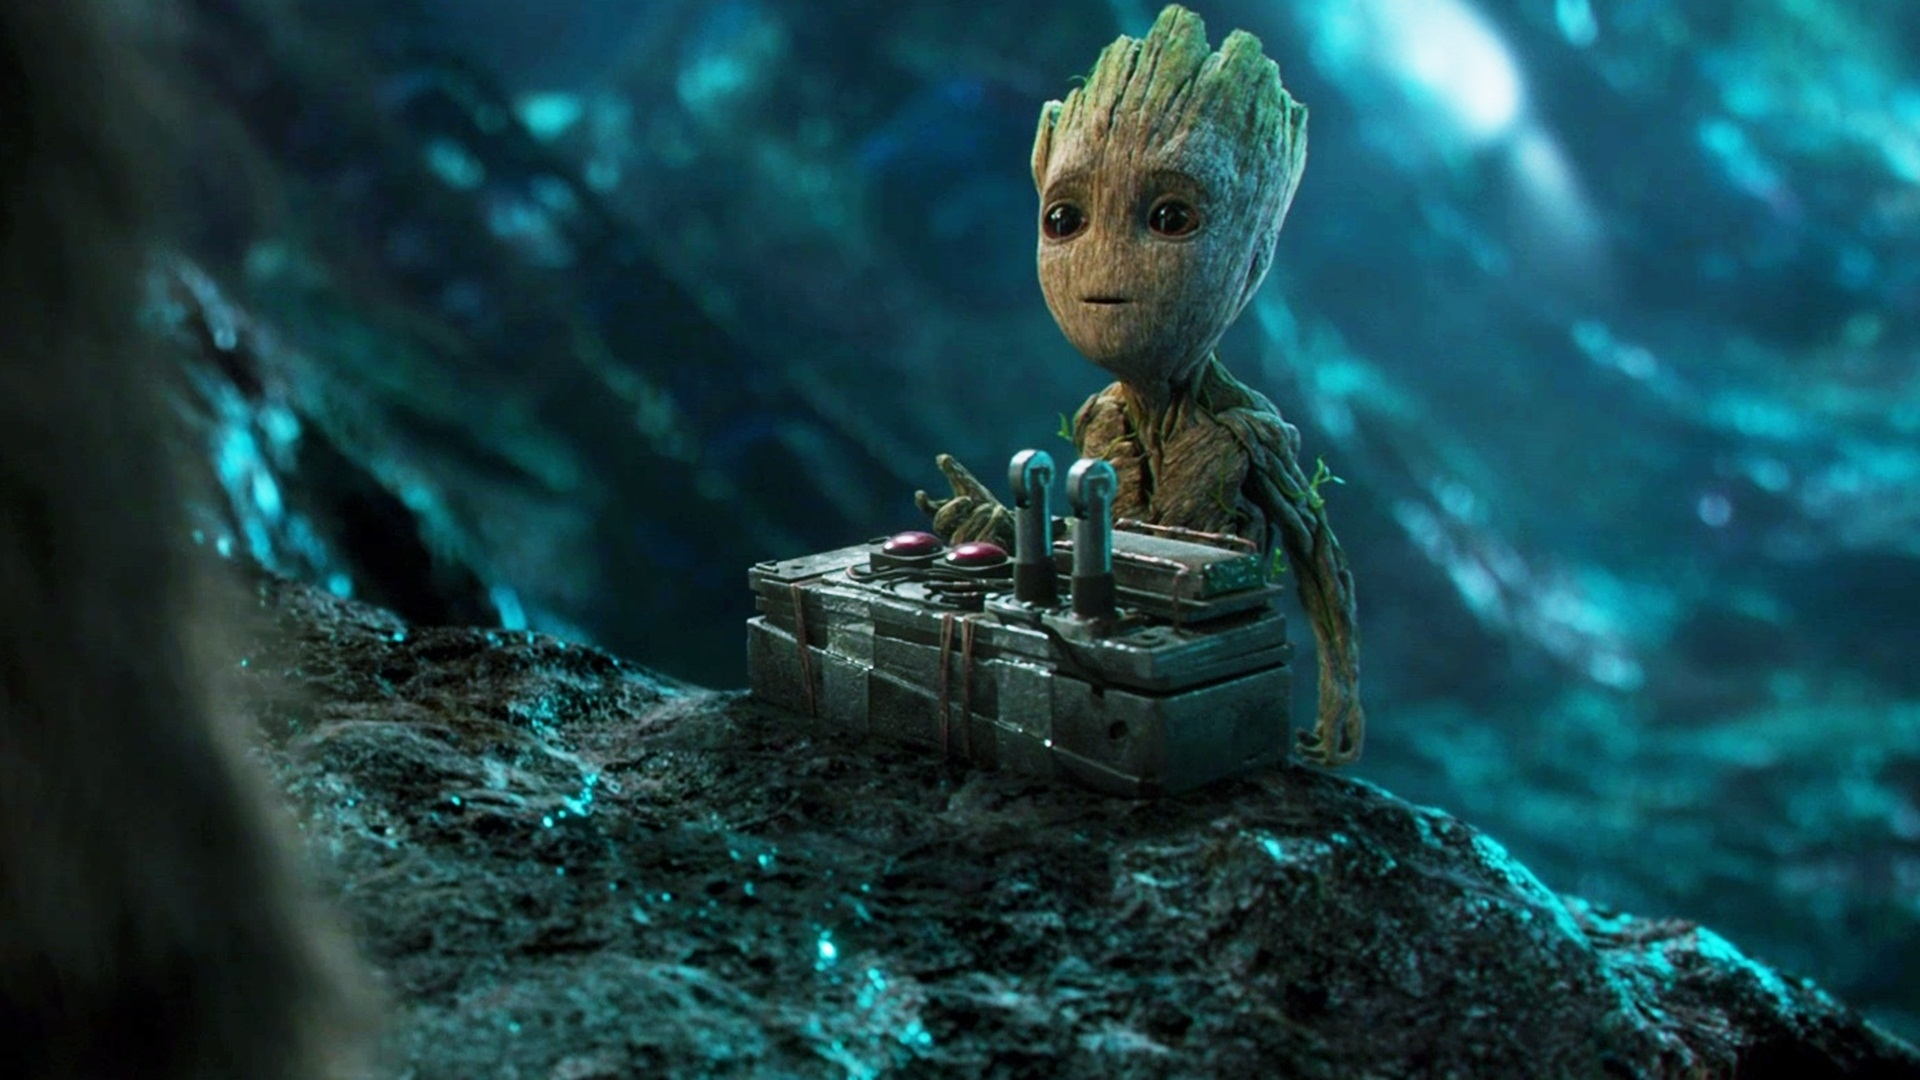 10 Latest Wallpapers Of Baby Animals Full Hd 1080p For Pc: 10 Latest Baby Groot Hd Wallpaper FULL HD 1080p For PC